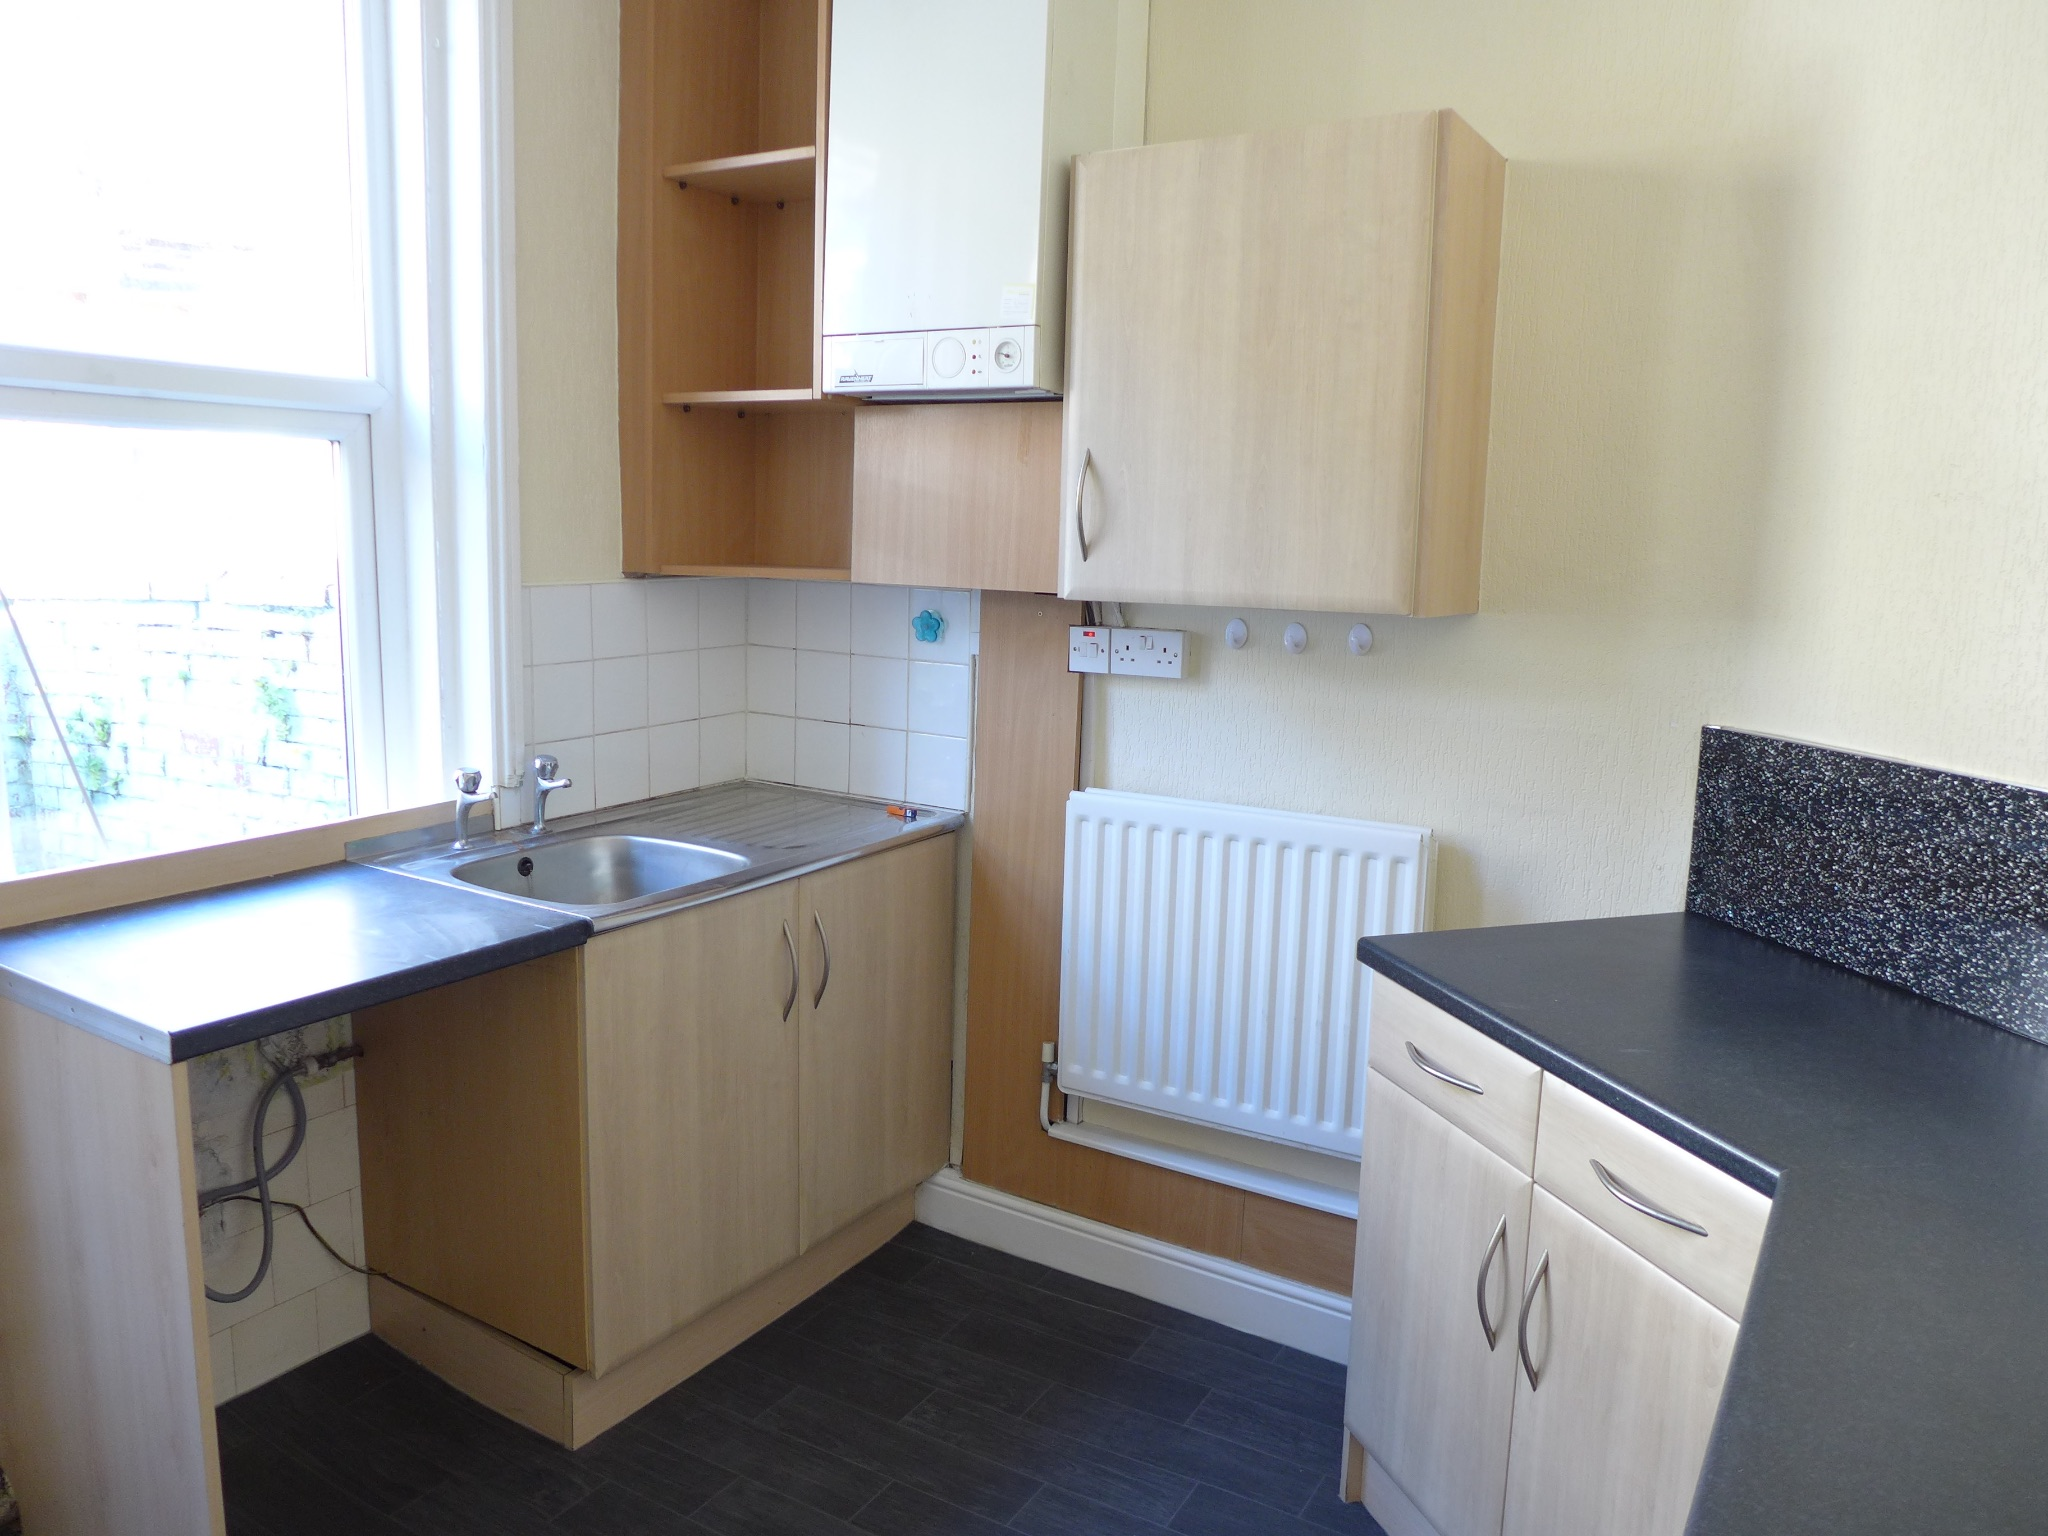 3 bedroom mid terraced house For Sale in Todmorden - Photograph 4.